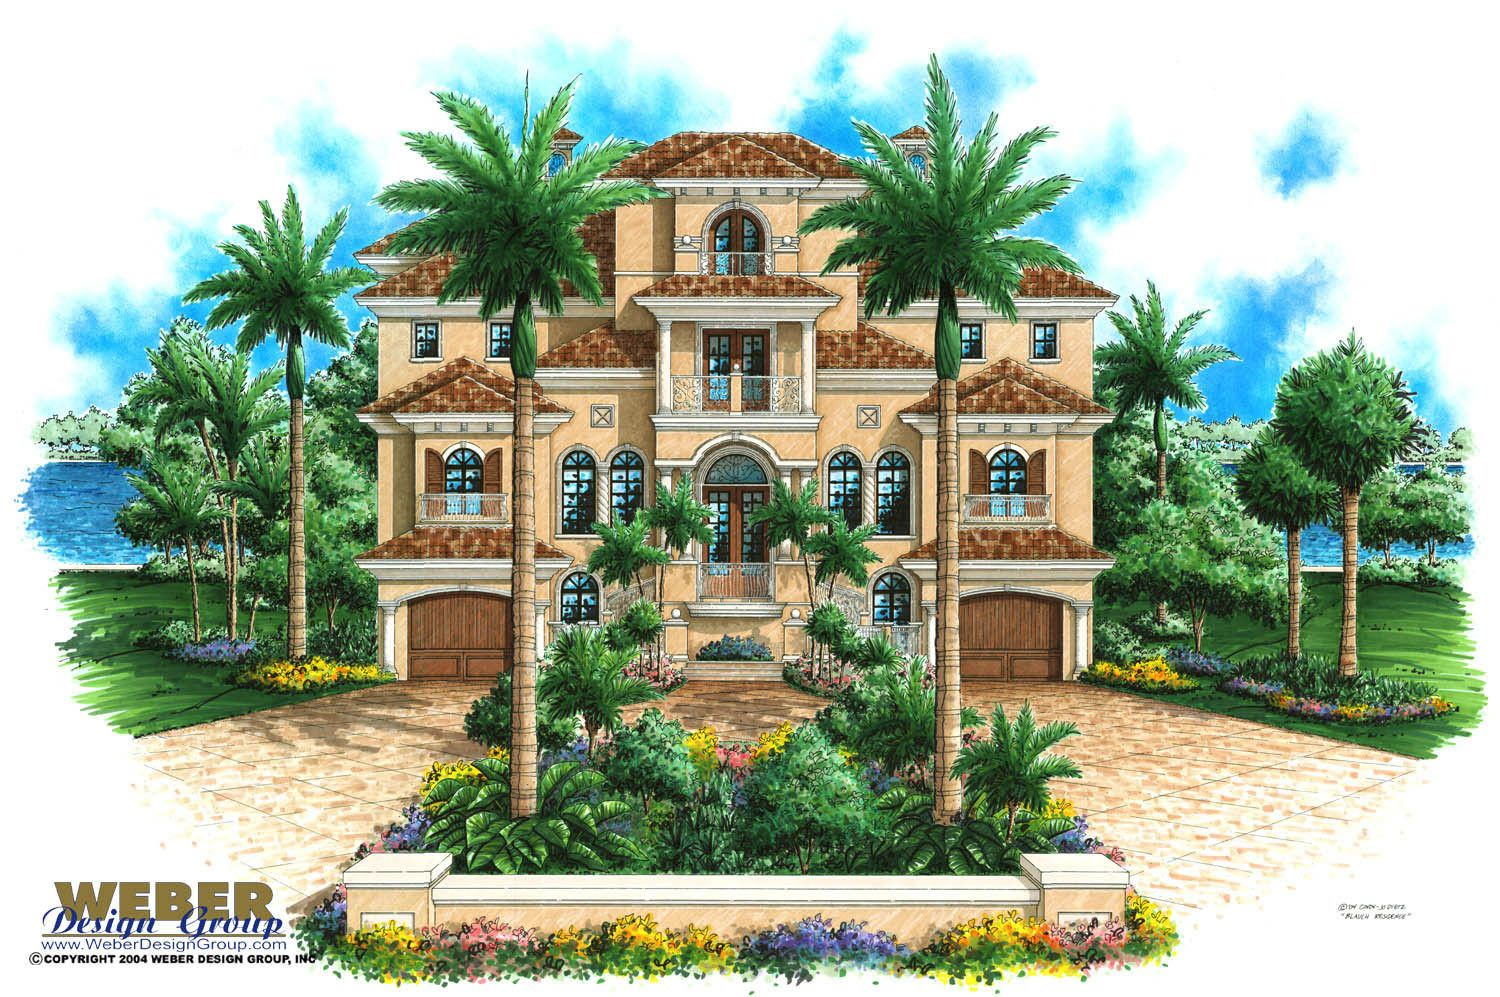 Mediterranean House Plans alamosa house plan Massive Mediterranean House Plan Great For A Narrow Lot With Over 10000 Total Square